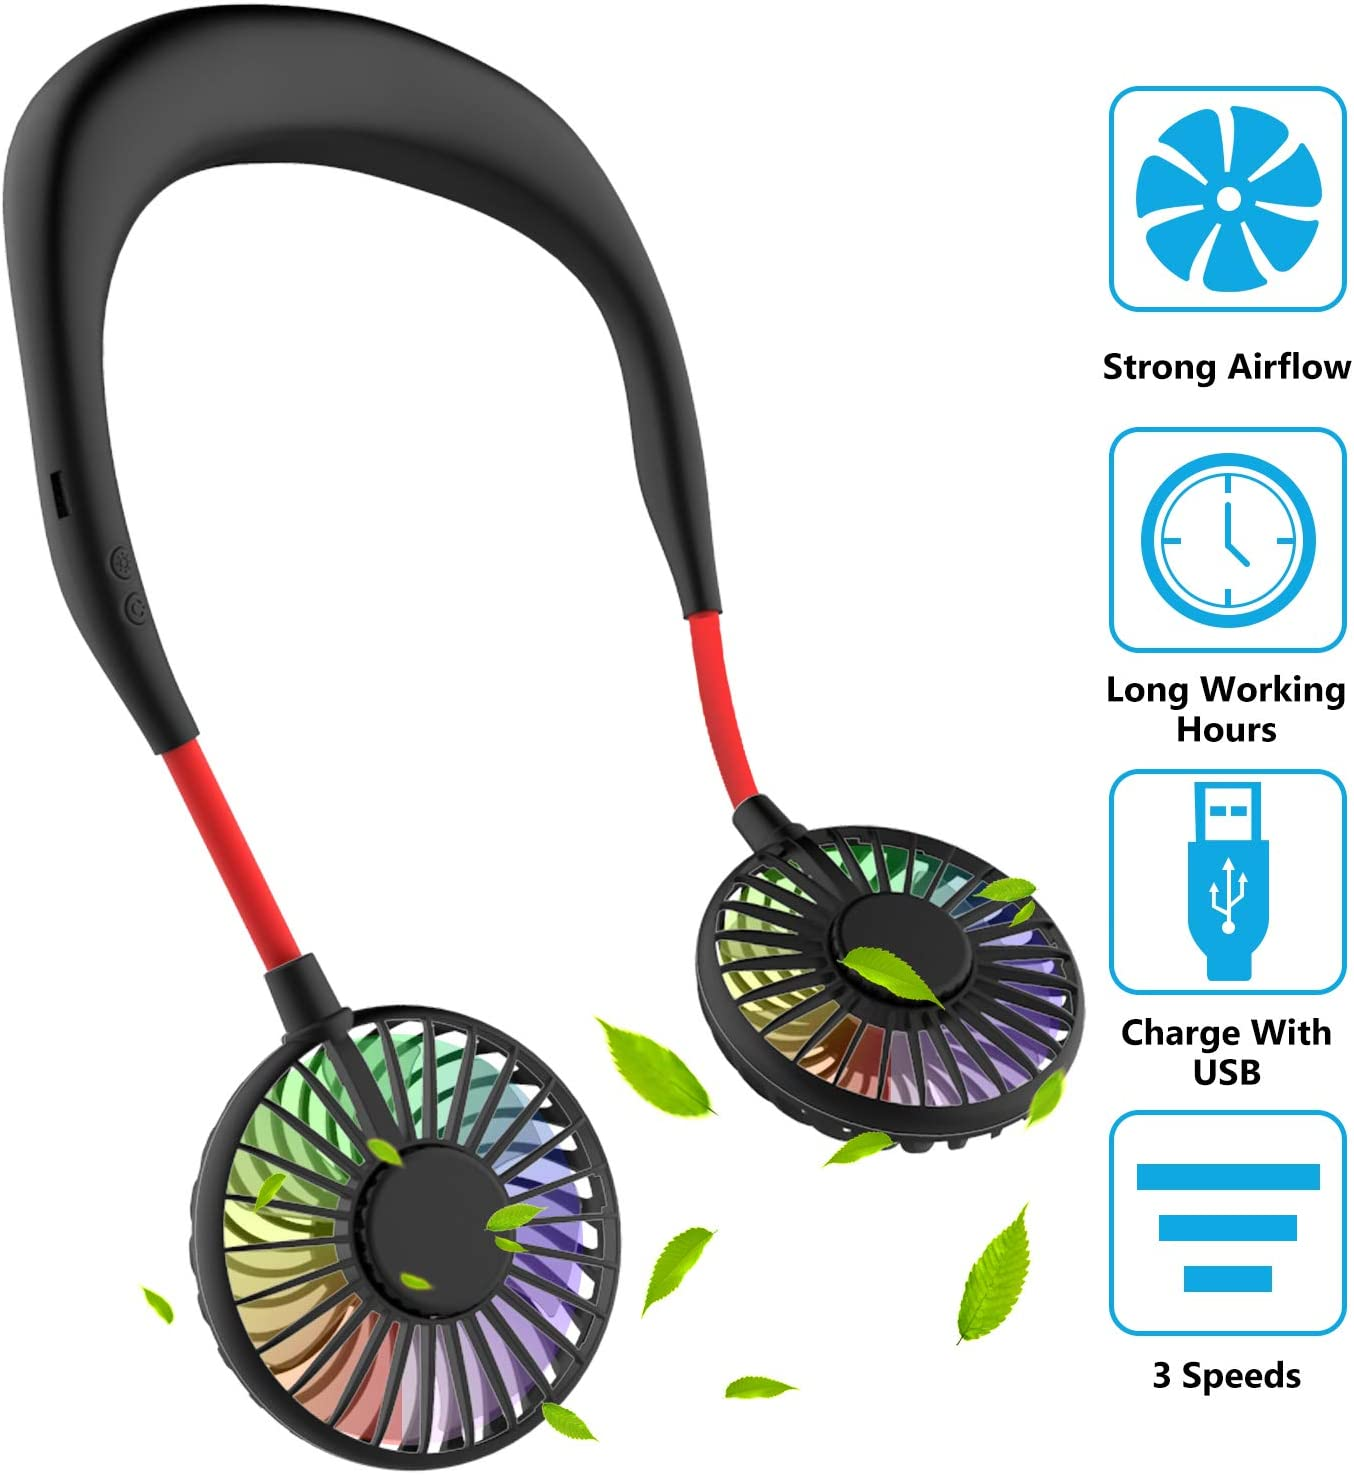 Hand Free Mini USB Personal Fan - Rechargeable Portable Headphone Design Wearable Neckband Fan,3 Level Air Flow,7 LED Lights,360 Degree Free Rotation Perfect for Sports,Office and Outdoor (Black)